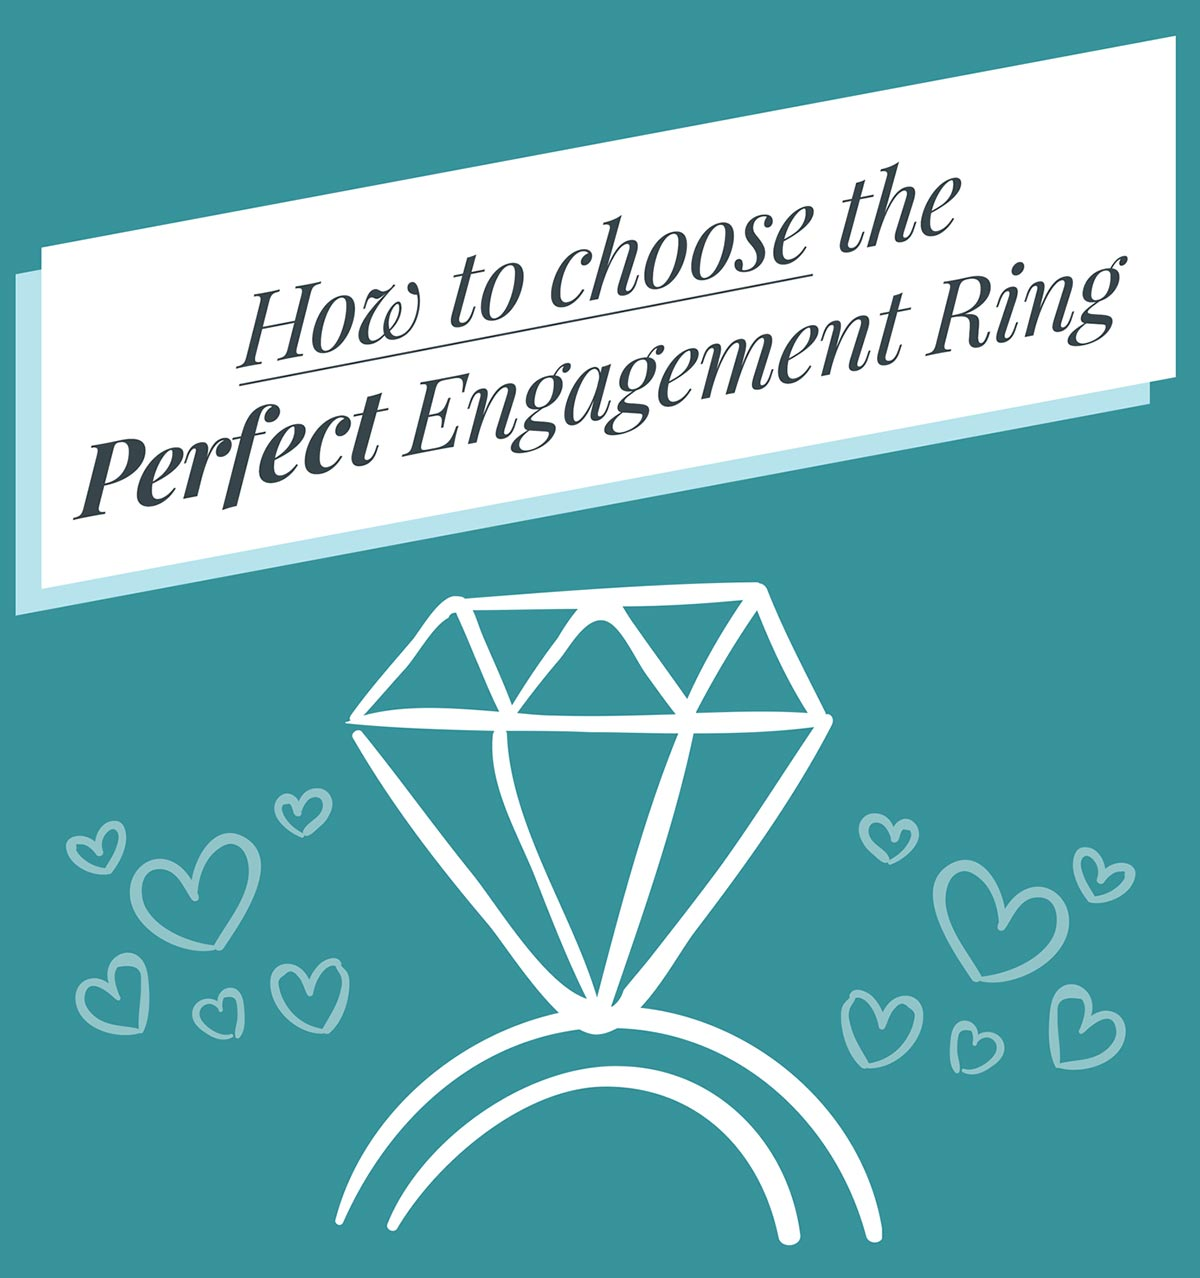 [Infographic] How To Choose The Perfect Engagement Ring